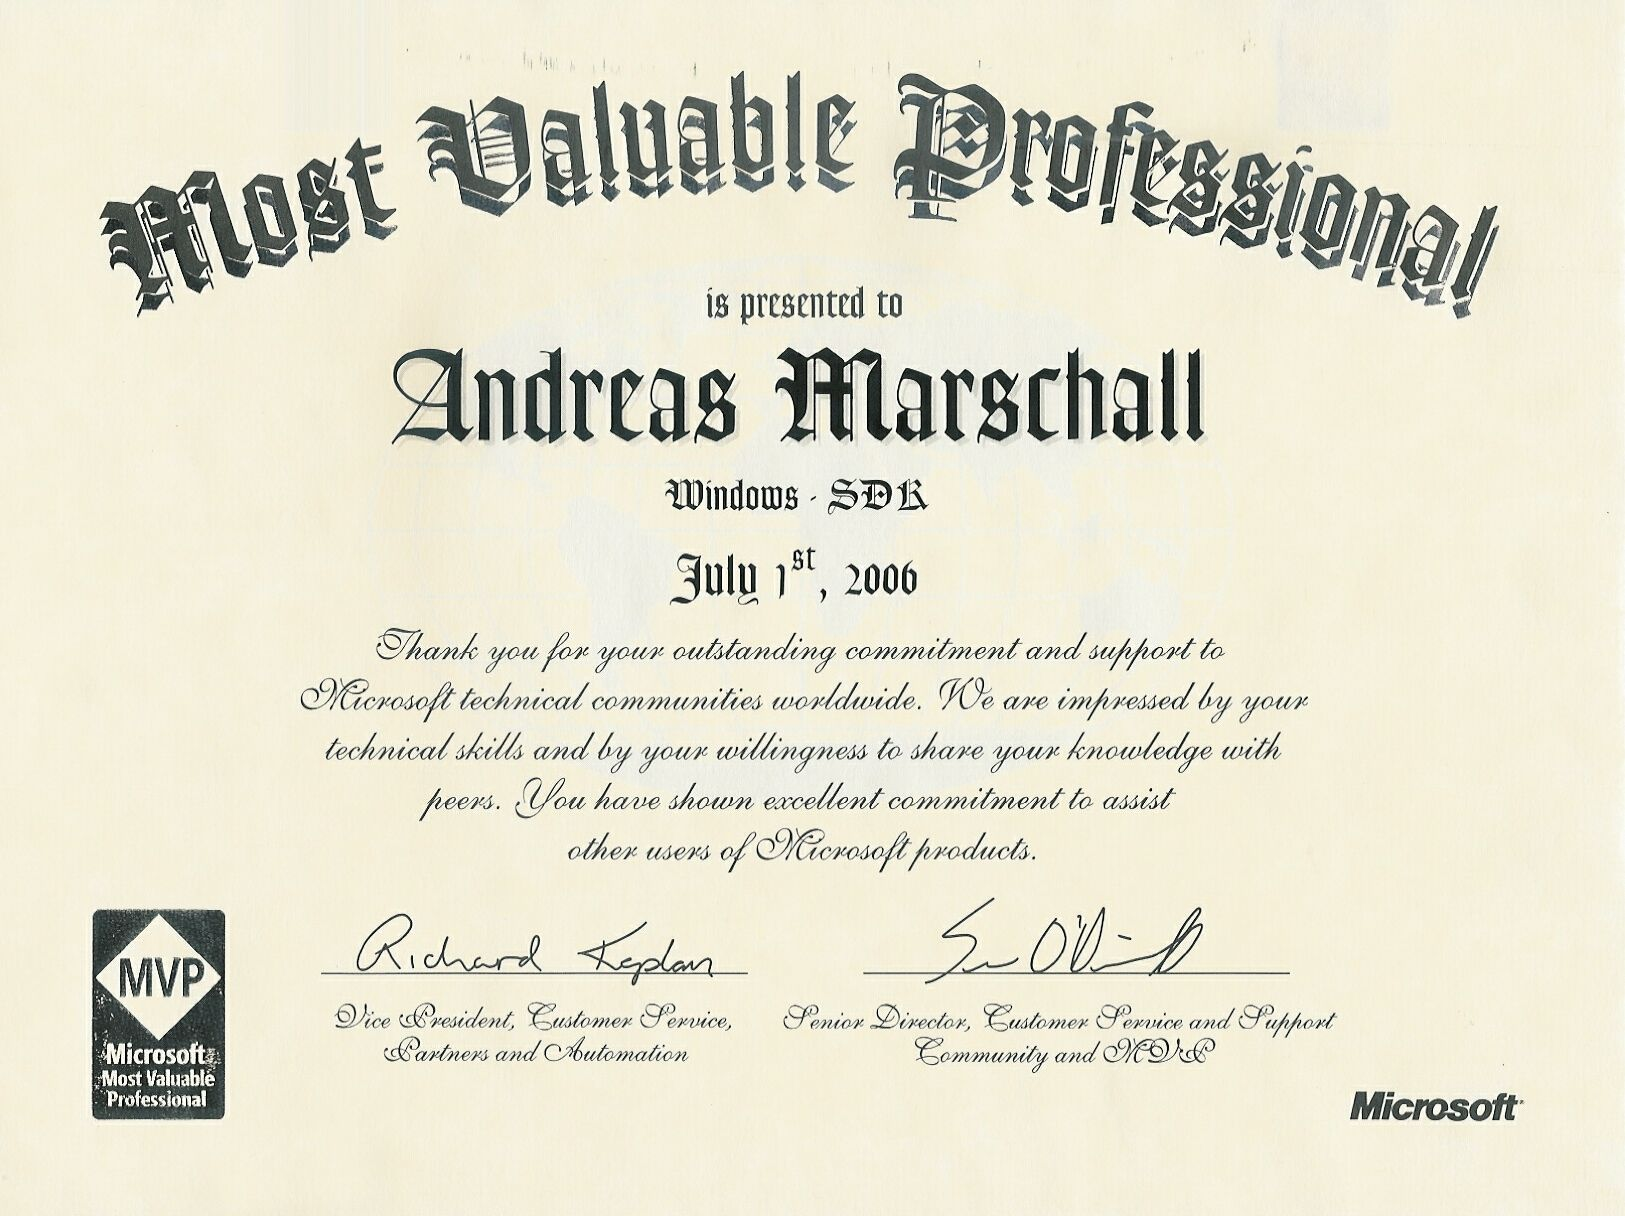 Long service award certificate examples rent slips report andreas marschalls tapi and tspi faq mvp 2006 andreas marschalls tapi and tspi faqhtm long service award certificate examples yadclub Image collections